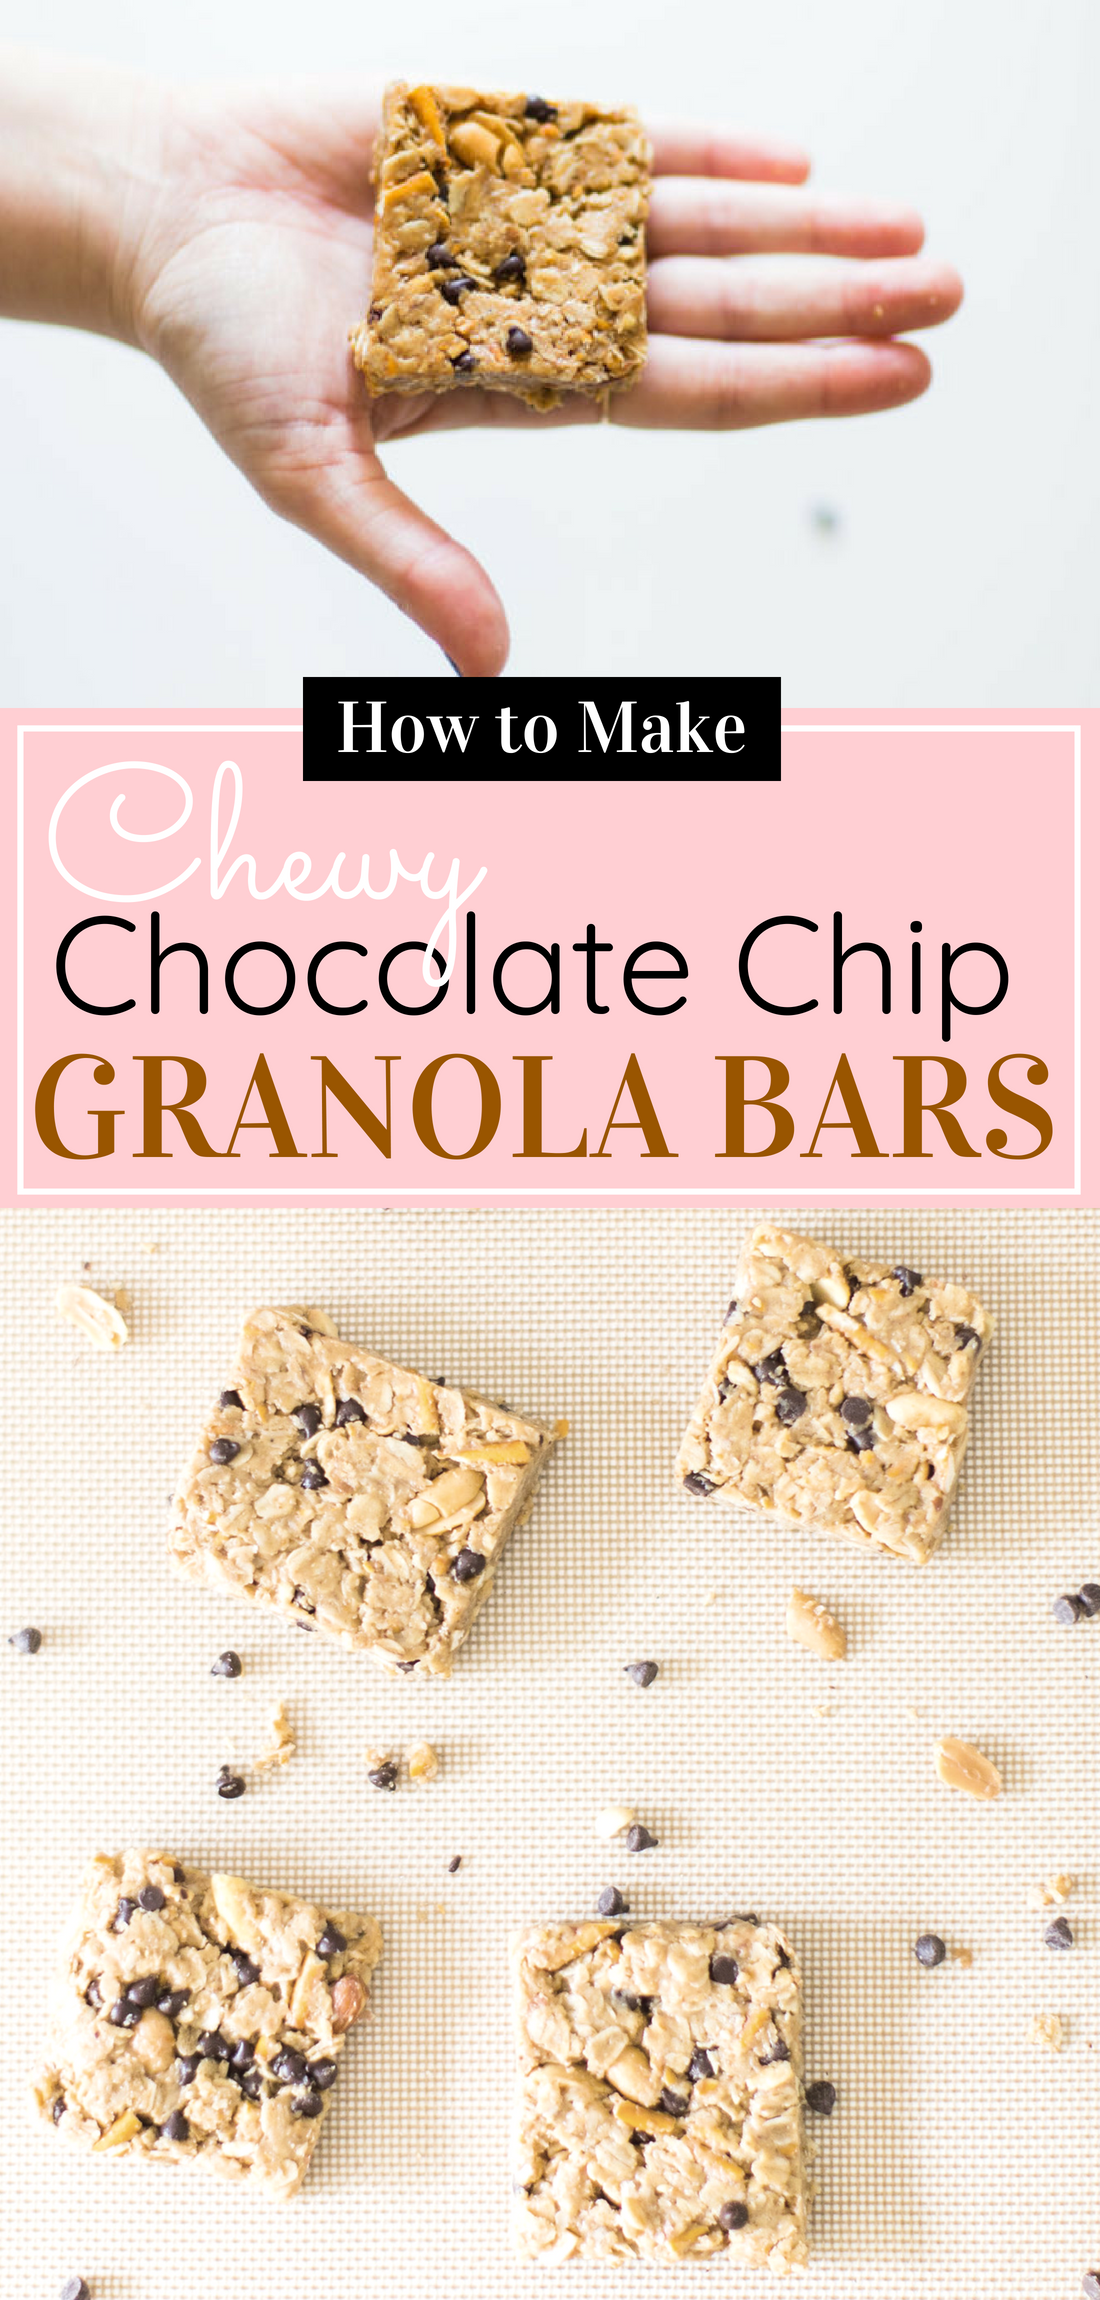 How to make our favorite dairy-free soft chocolate chip pretzel granola bars. Click through for the easy recipe. #granolabars #homemadegranolabars #dairyfree #homemadesnack | glitterinc.com | @glitterinc